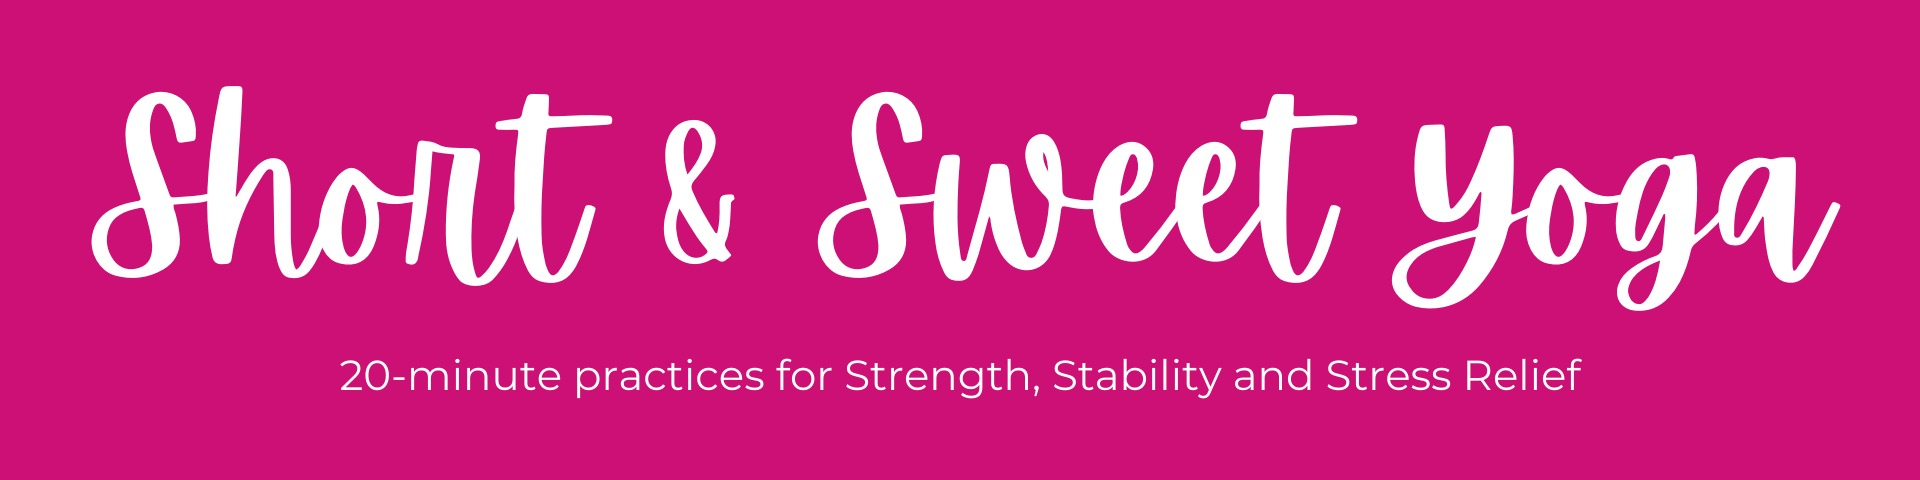 Short-and-Sweet-Yoga-20-Minute-Practices-for-Strength-Stability-and-Stress-Relief-with-Rebecca-Bly-Yoga-and-Retreats-at-RebeccaBly.com